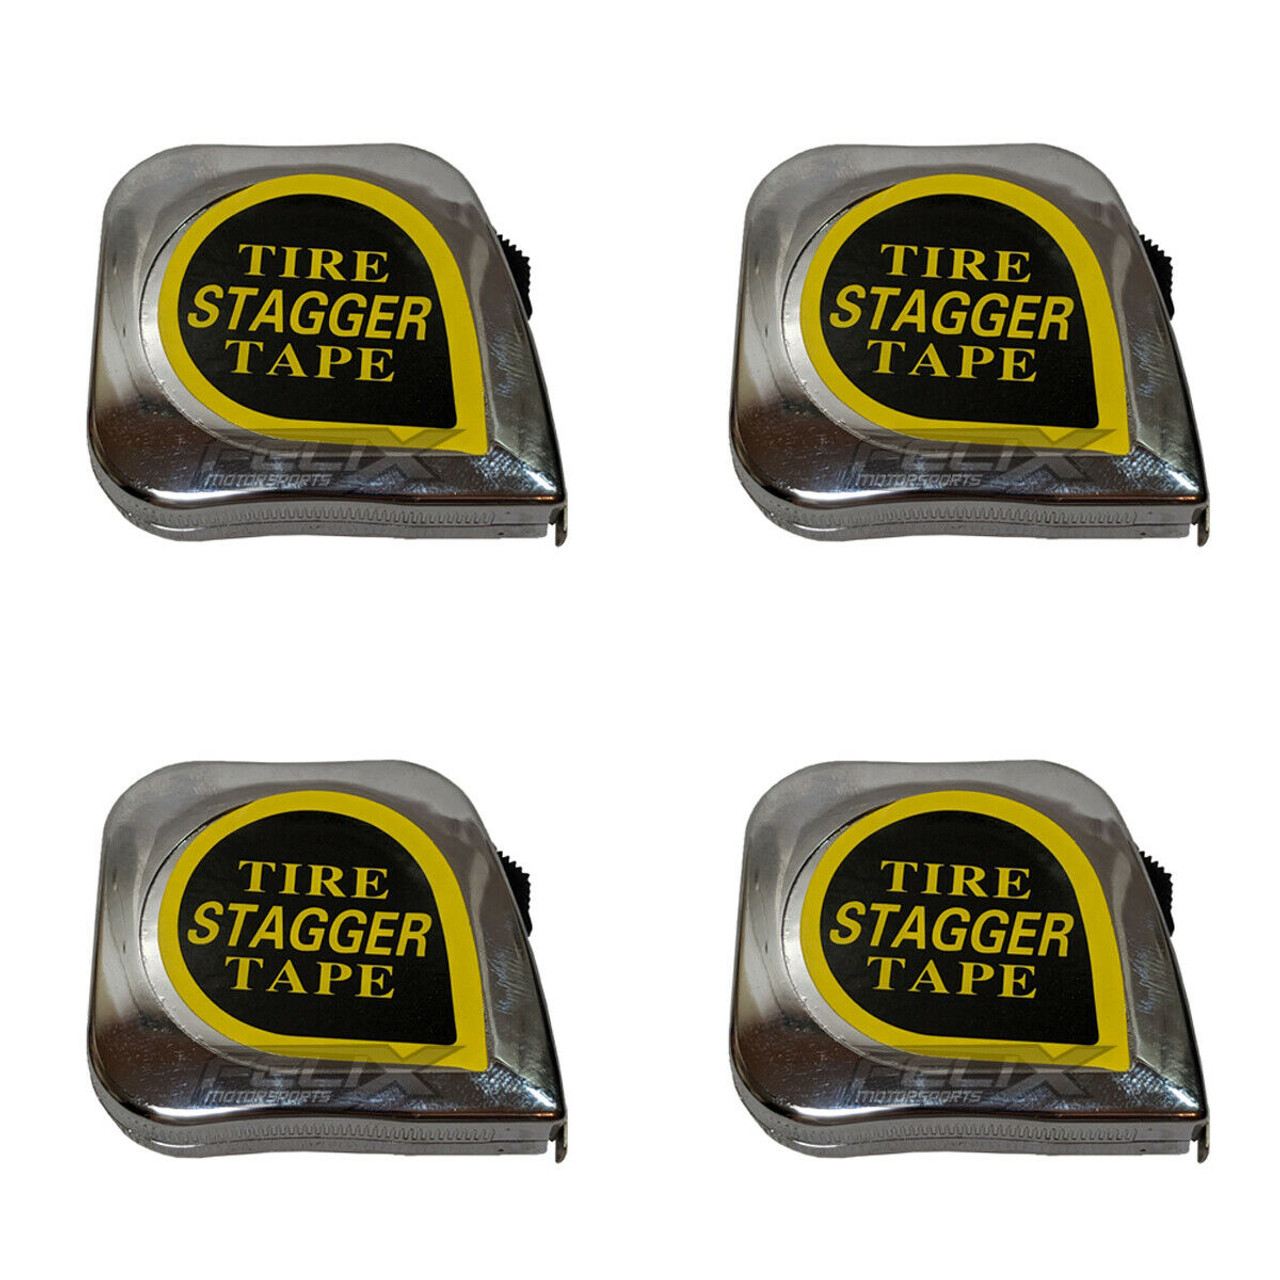 10/' Racing Tire Stagger Tape Measure with Magnetic Back Chrome Plated Race